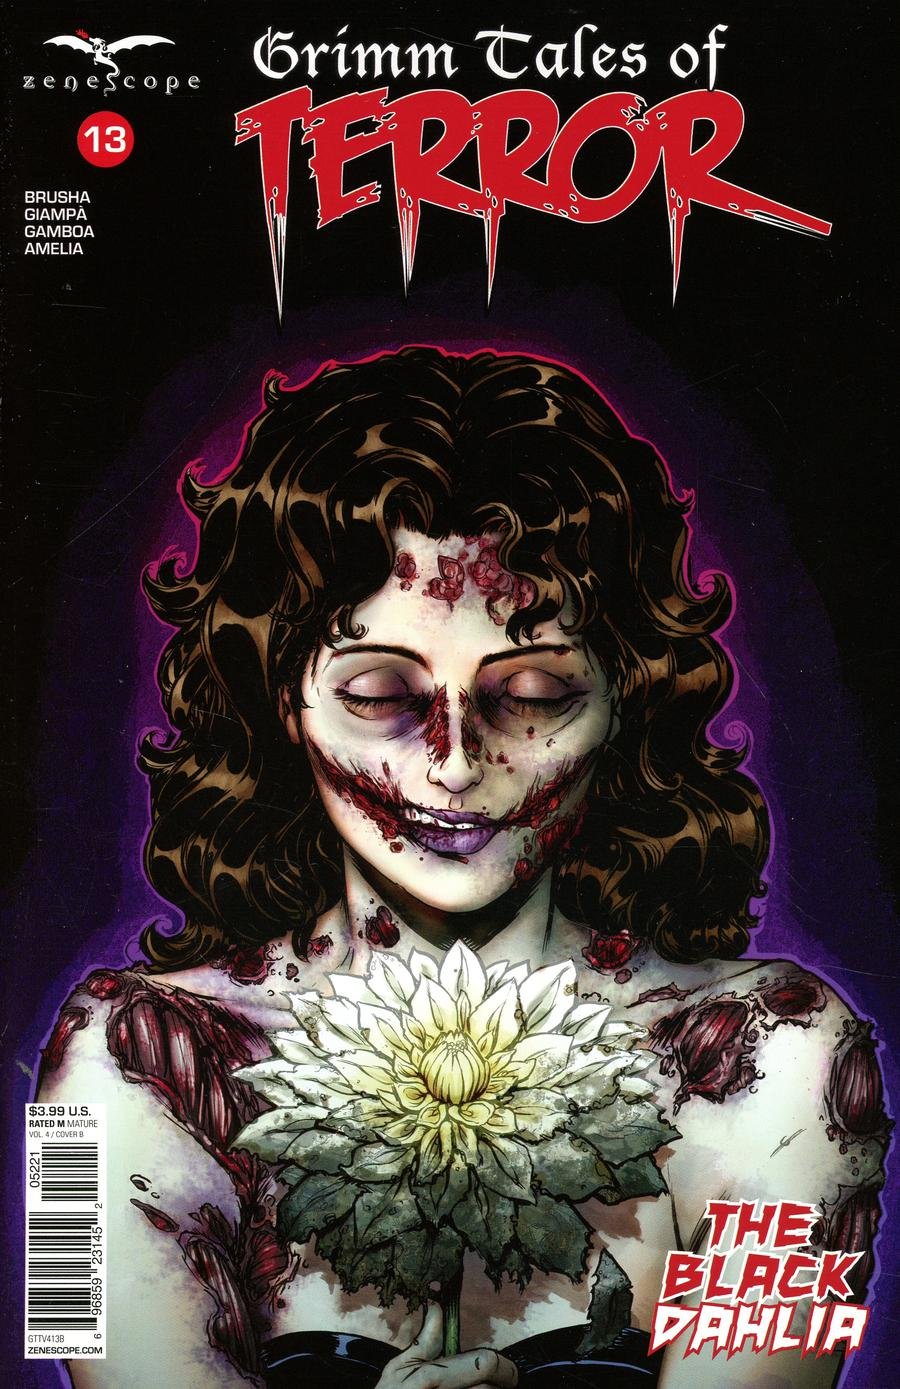 Grimm Fairy Tales Presents Grimm Tales Of Terror Vol 4 #13 Cover B Dan Leister